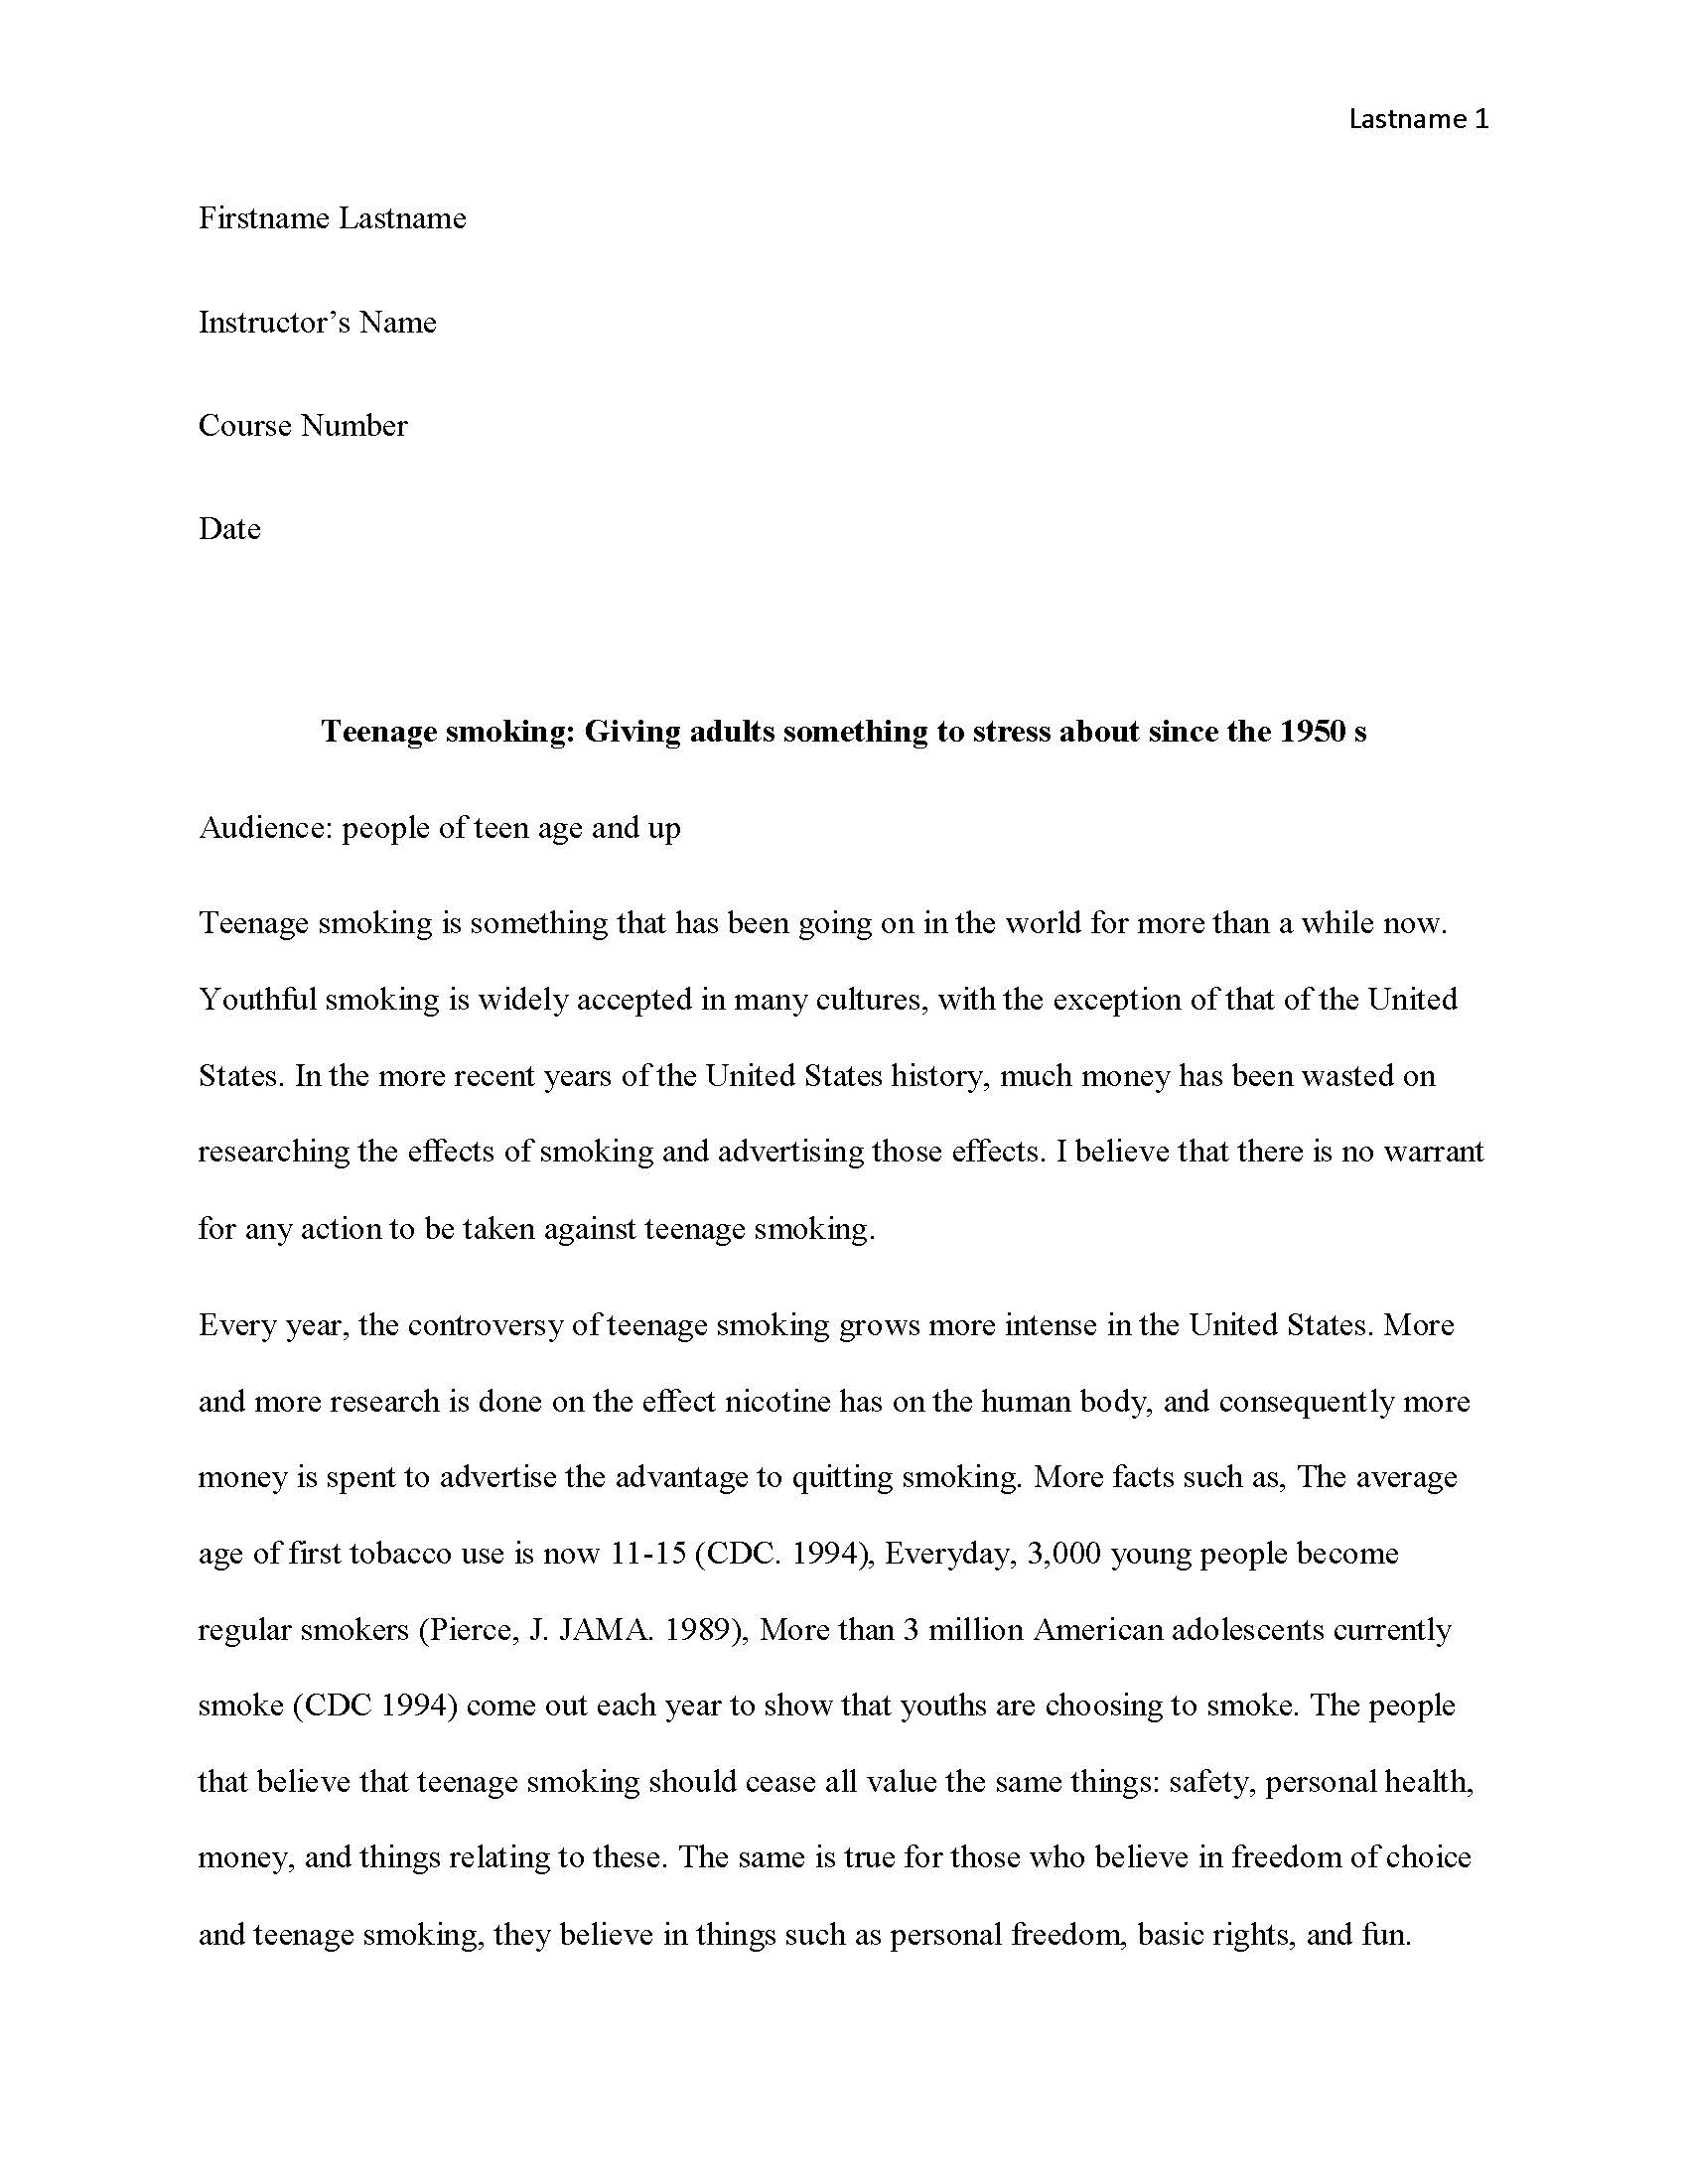 016 Teen Smoking Free Sample Page 1 Narrative Interview Essay Impressive Example Examples Full